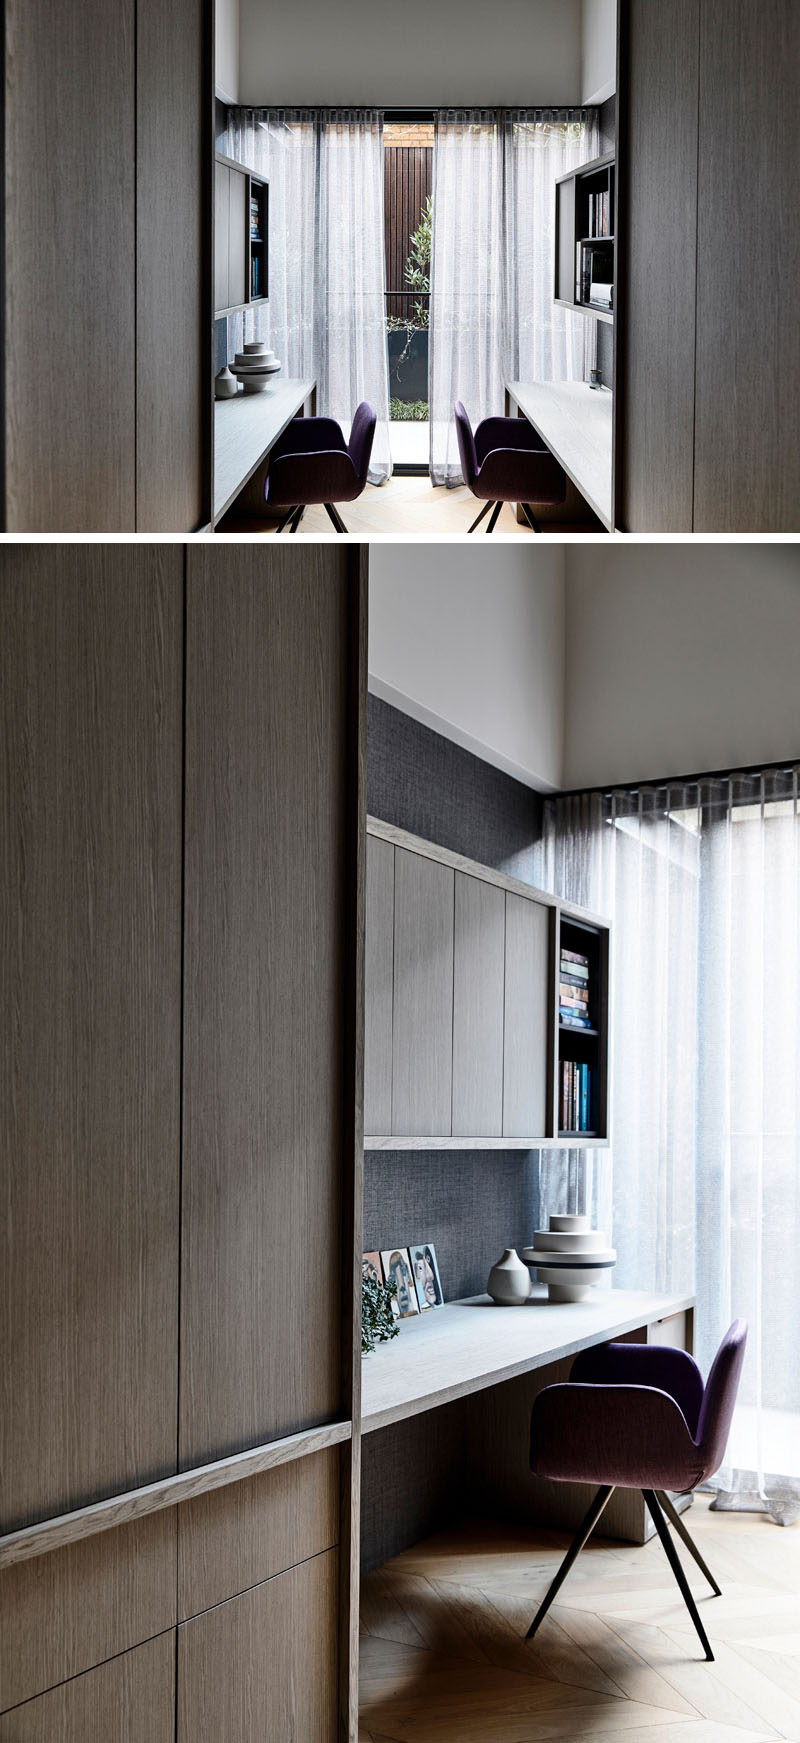 This modern home office has built-in shelving and enough room for two people to comfortable work. #HomeOffice #HomeOfficeForTwo